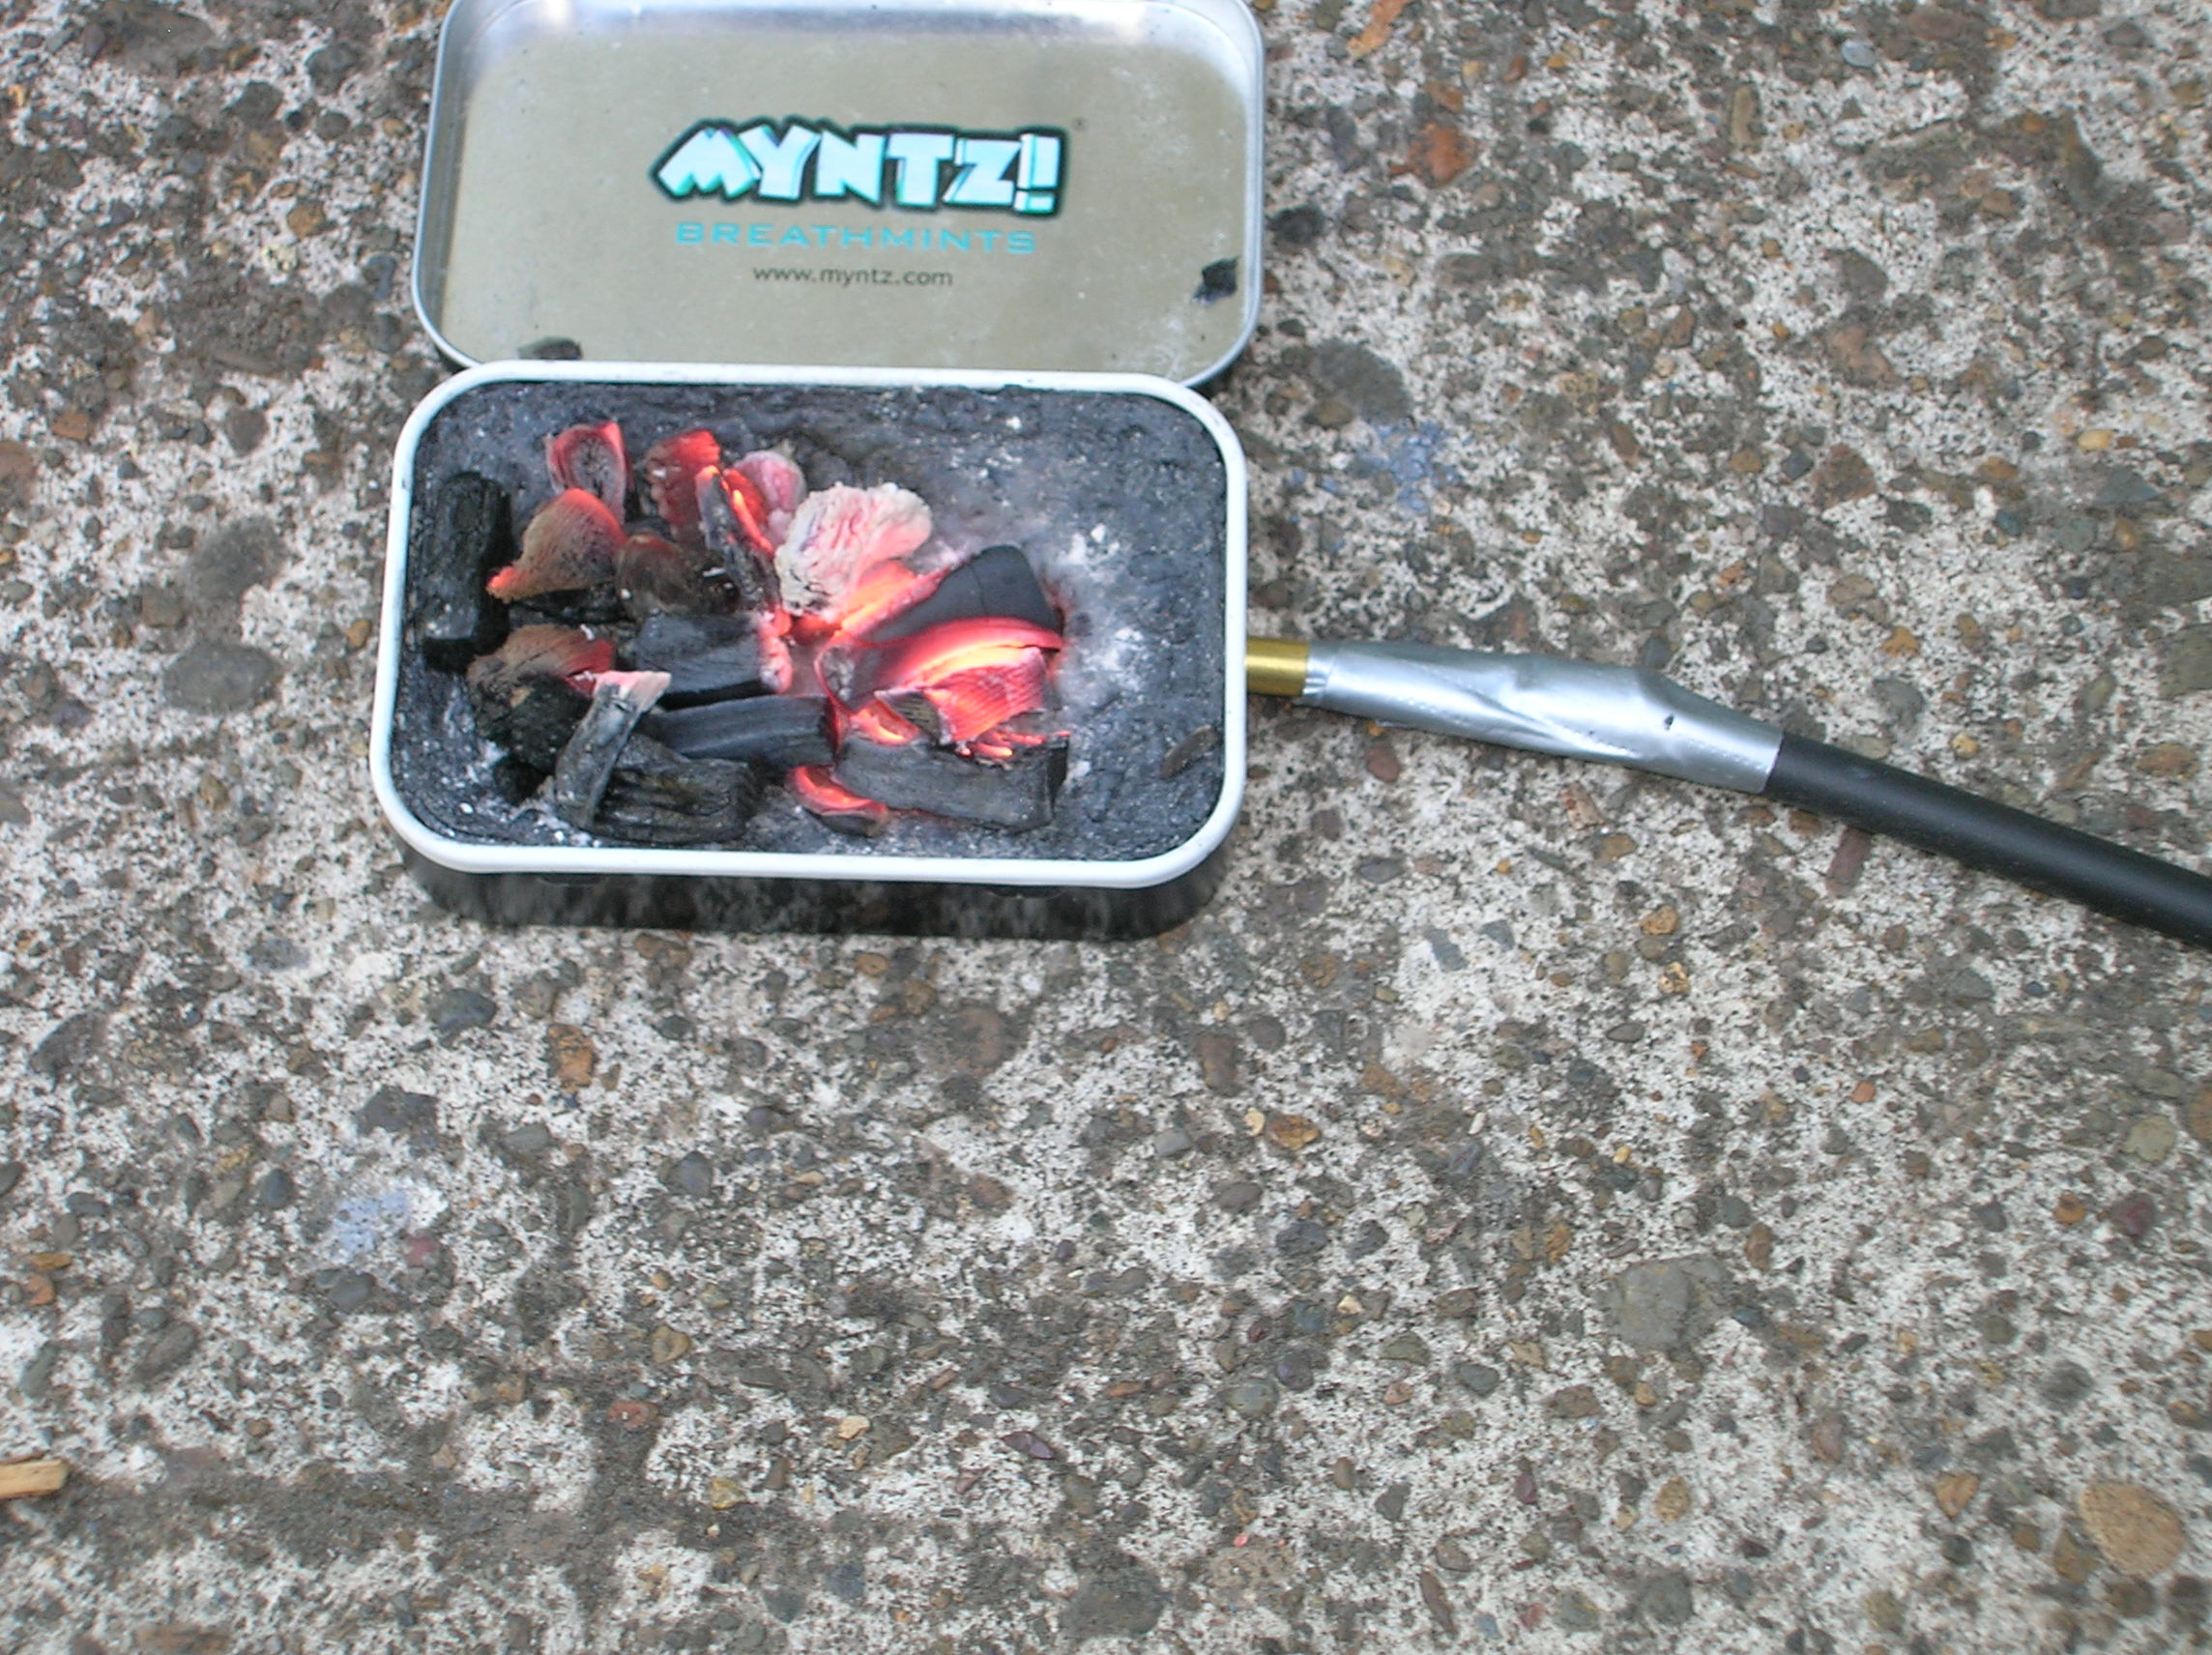 How to make a mini forge out of an Altoids tin